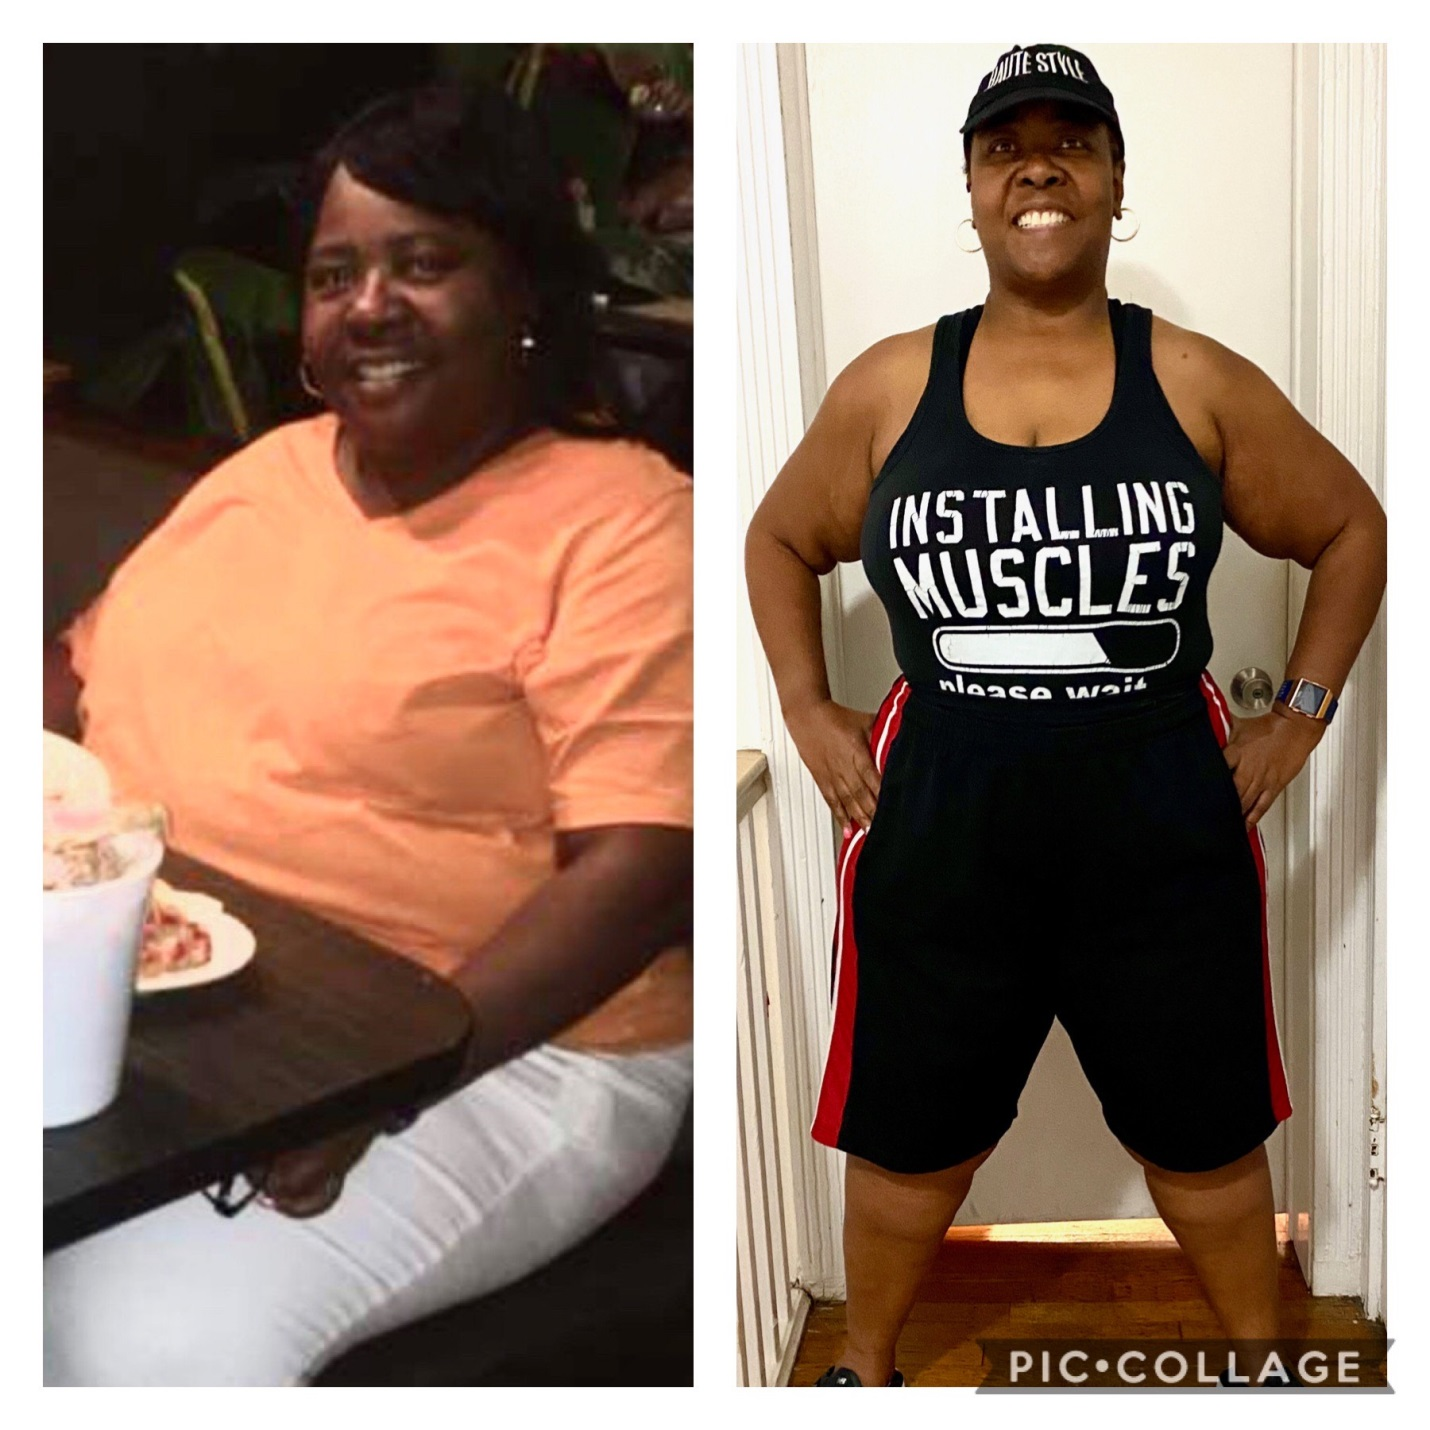 THE HEALING POWER OF A HEATHY LIFESTYLE - A success story in her own words